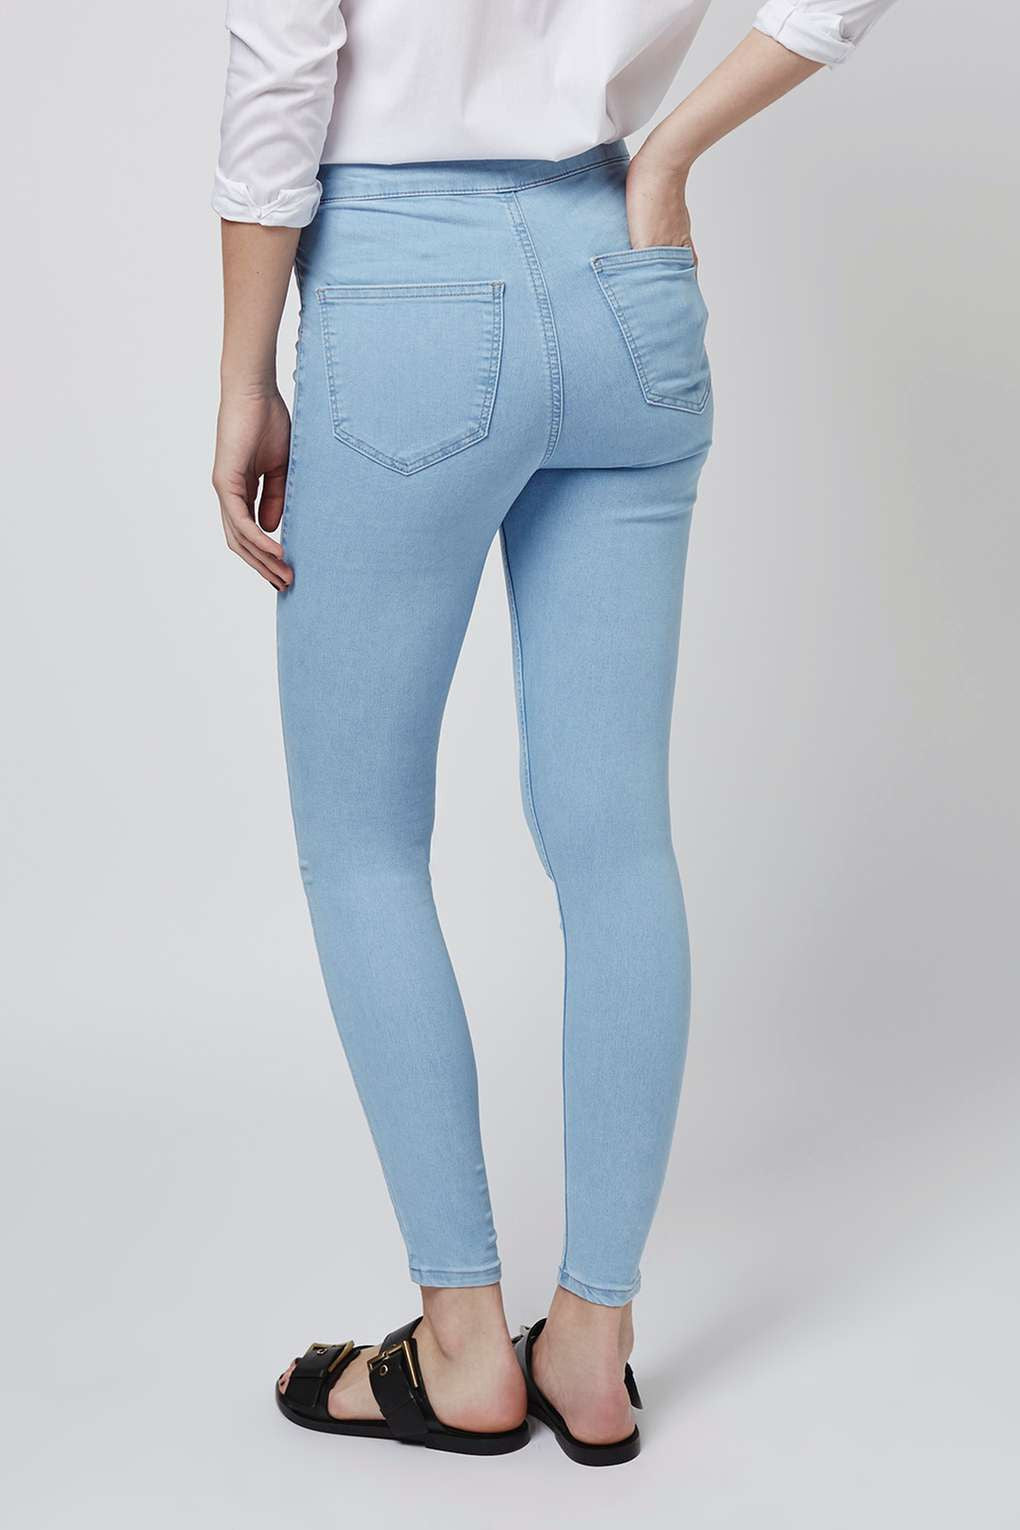 Baby Blue Skin Fit High Waist Jeans